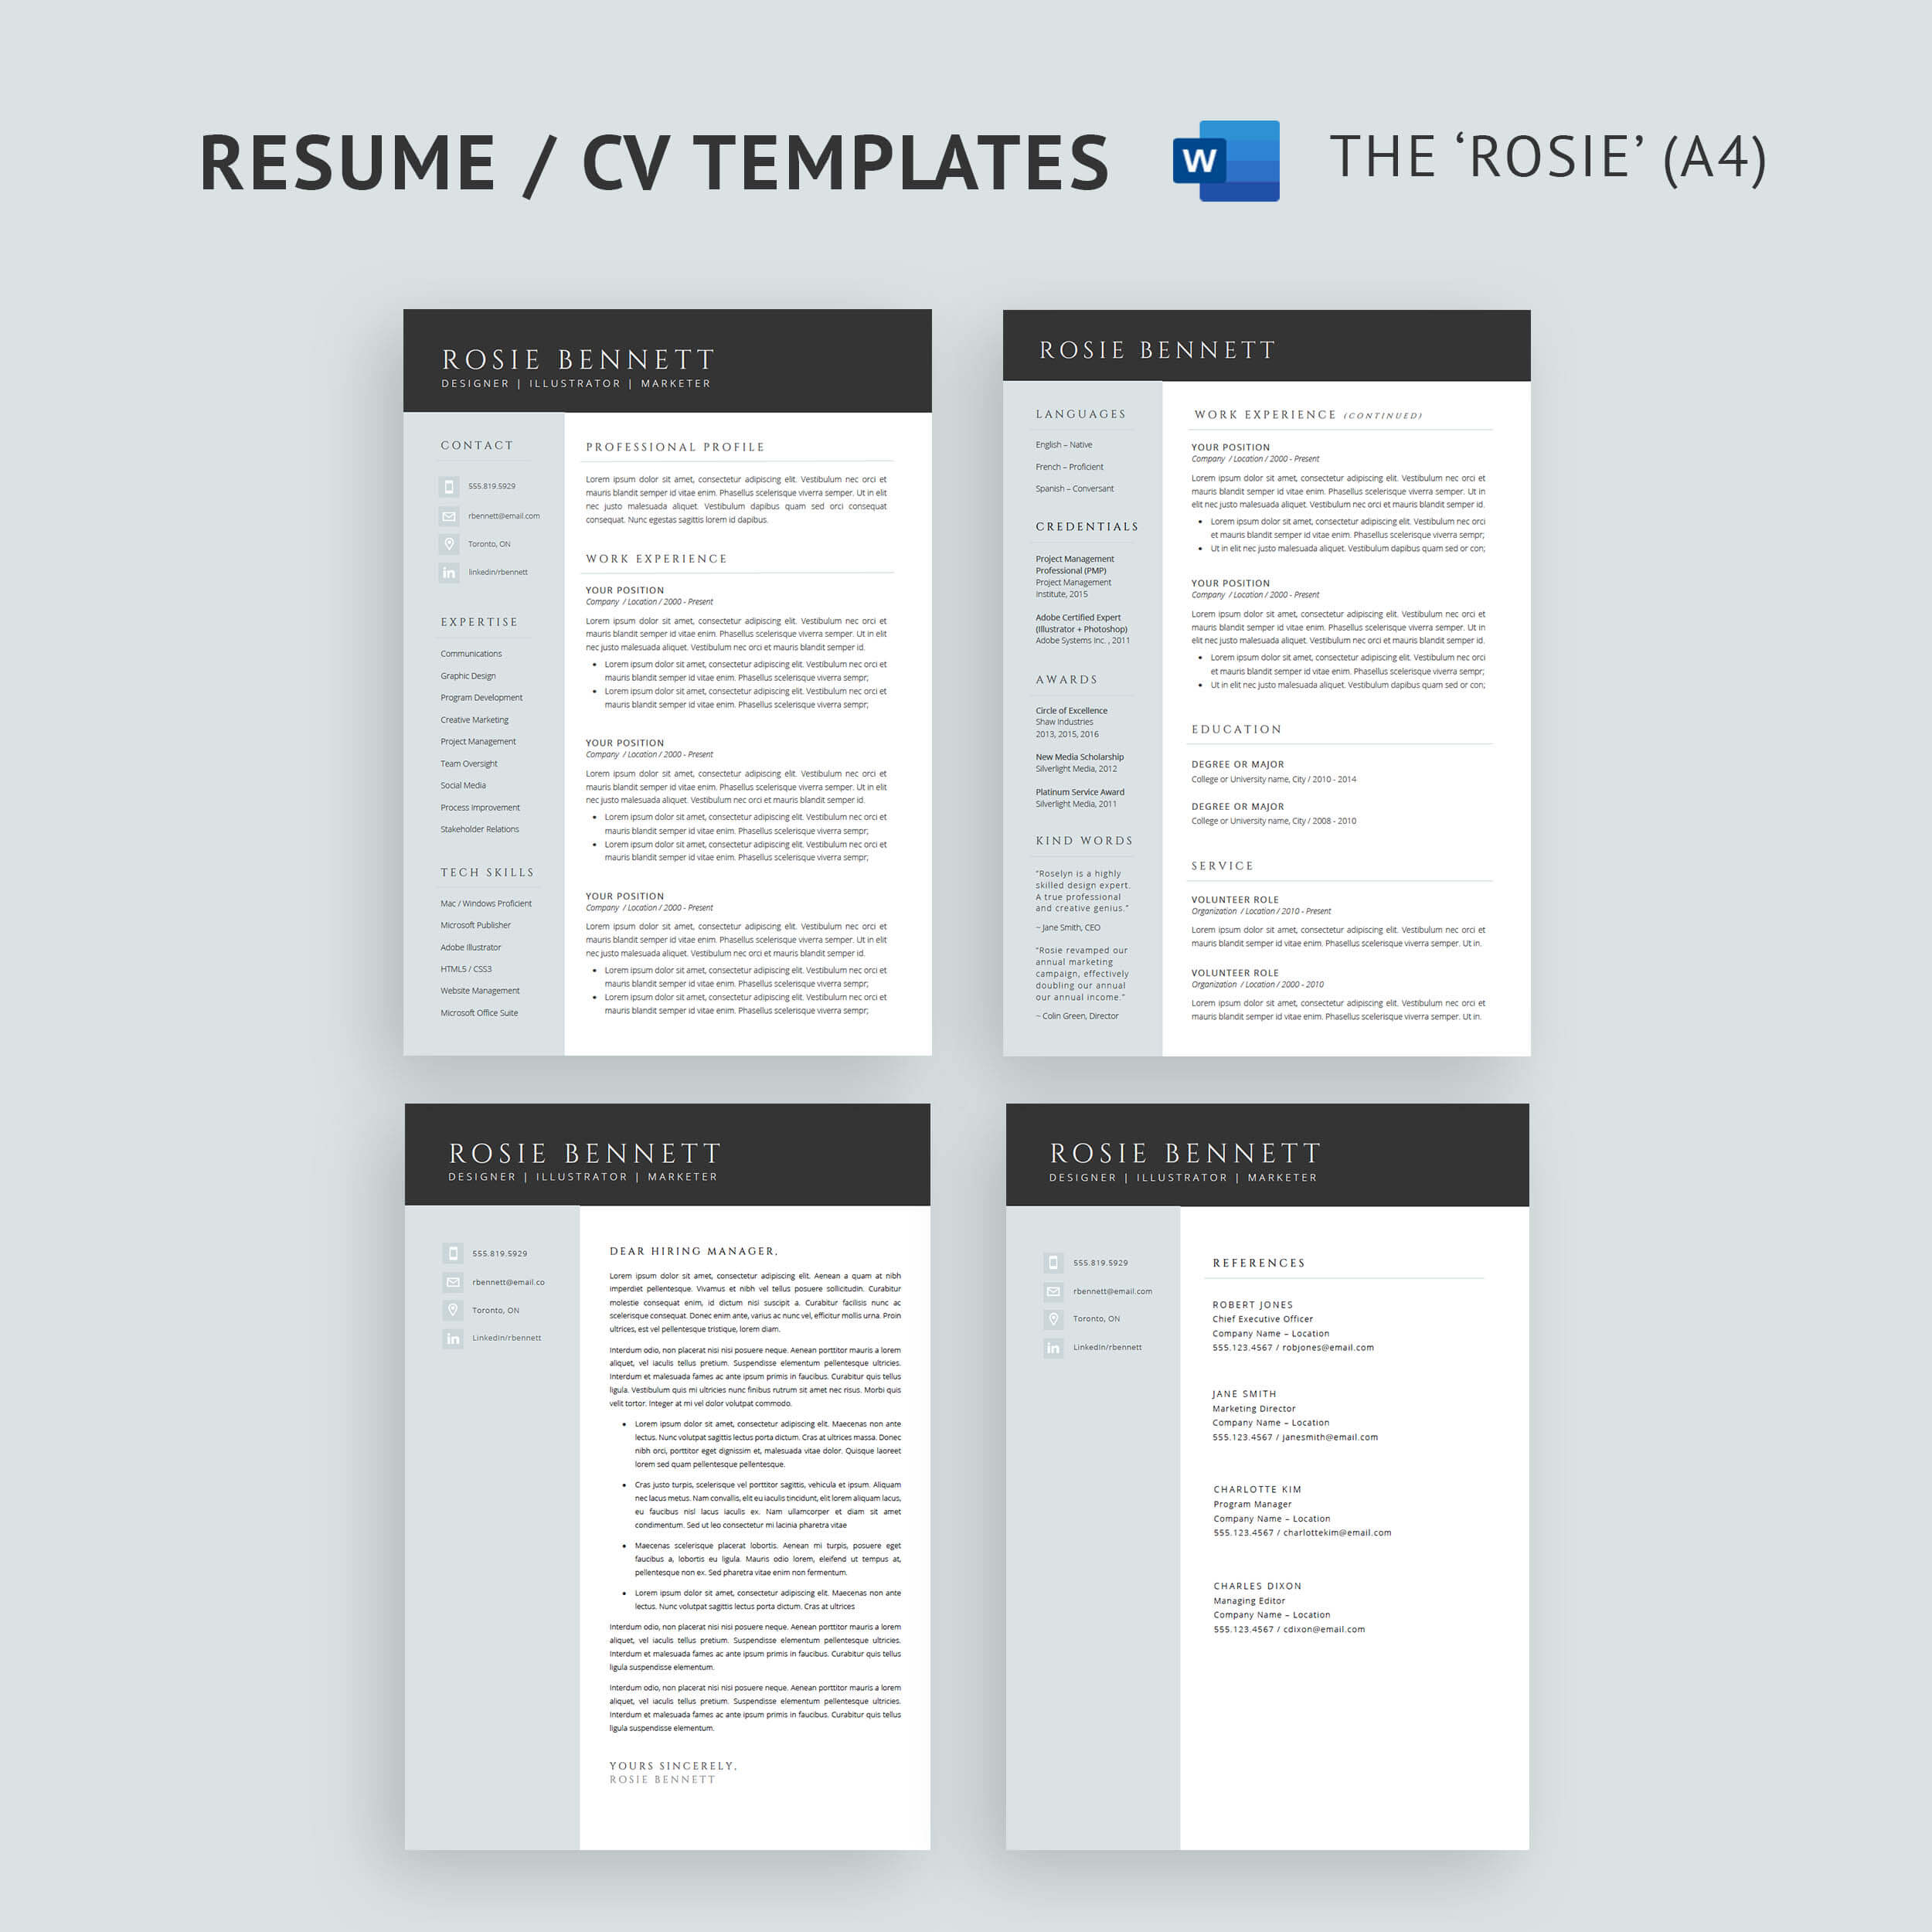 Resume Templates For Microsoft Word And Google Docs How